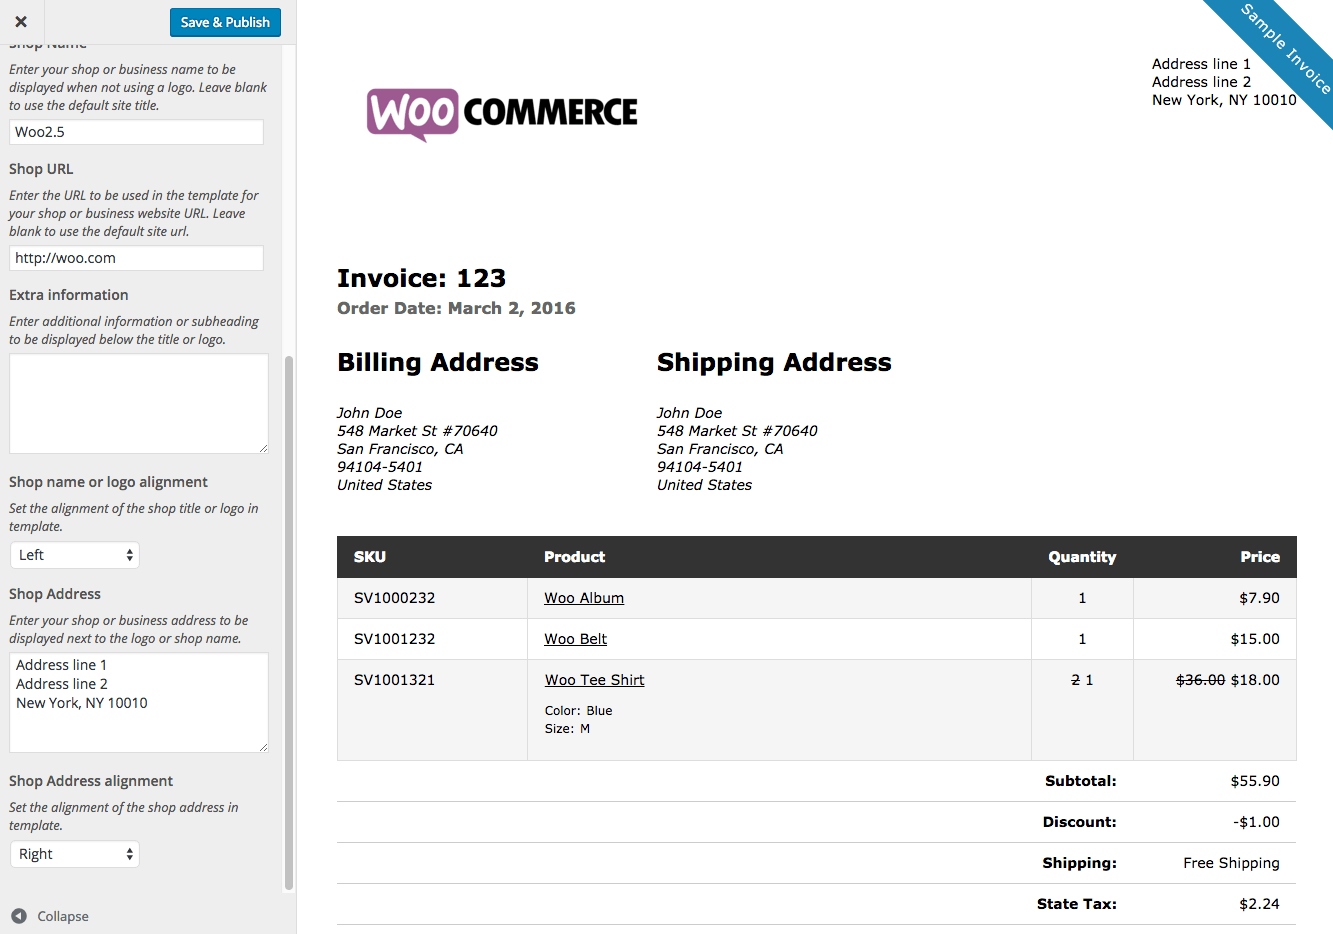 Coachoutletonlineplusus  Pretty Woocommerce Print Invoices Amp Packing Lists  Woocommerce Docs With Exquisite Woocommerce Print Invoices  Packing Lists Customizer With Enchanting Receipts Maker Also Purchase Receipts In Addition Irs Constructive Receipt And Receipt For Services Template As Well As Receipt For Chicken Additionally Dominos Receipt From Docswoocommercecom With Coachoutletonlineplusus  Exquisite Woocommerce Print Invoices Amp Packing Lists  Woocommerce Docs With Enchanting Woocommerce Print Invoices  Packing Lists Customizer And Pretty Receipts Maker Also Purchase Receipts In Addition Irs Constructive Receipt From Docswoocommercecom